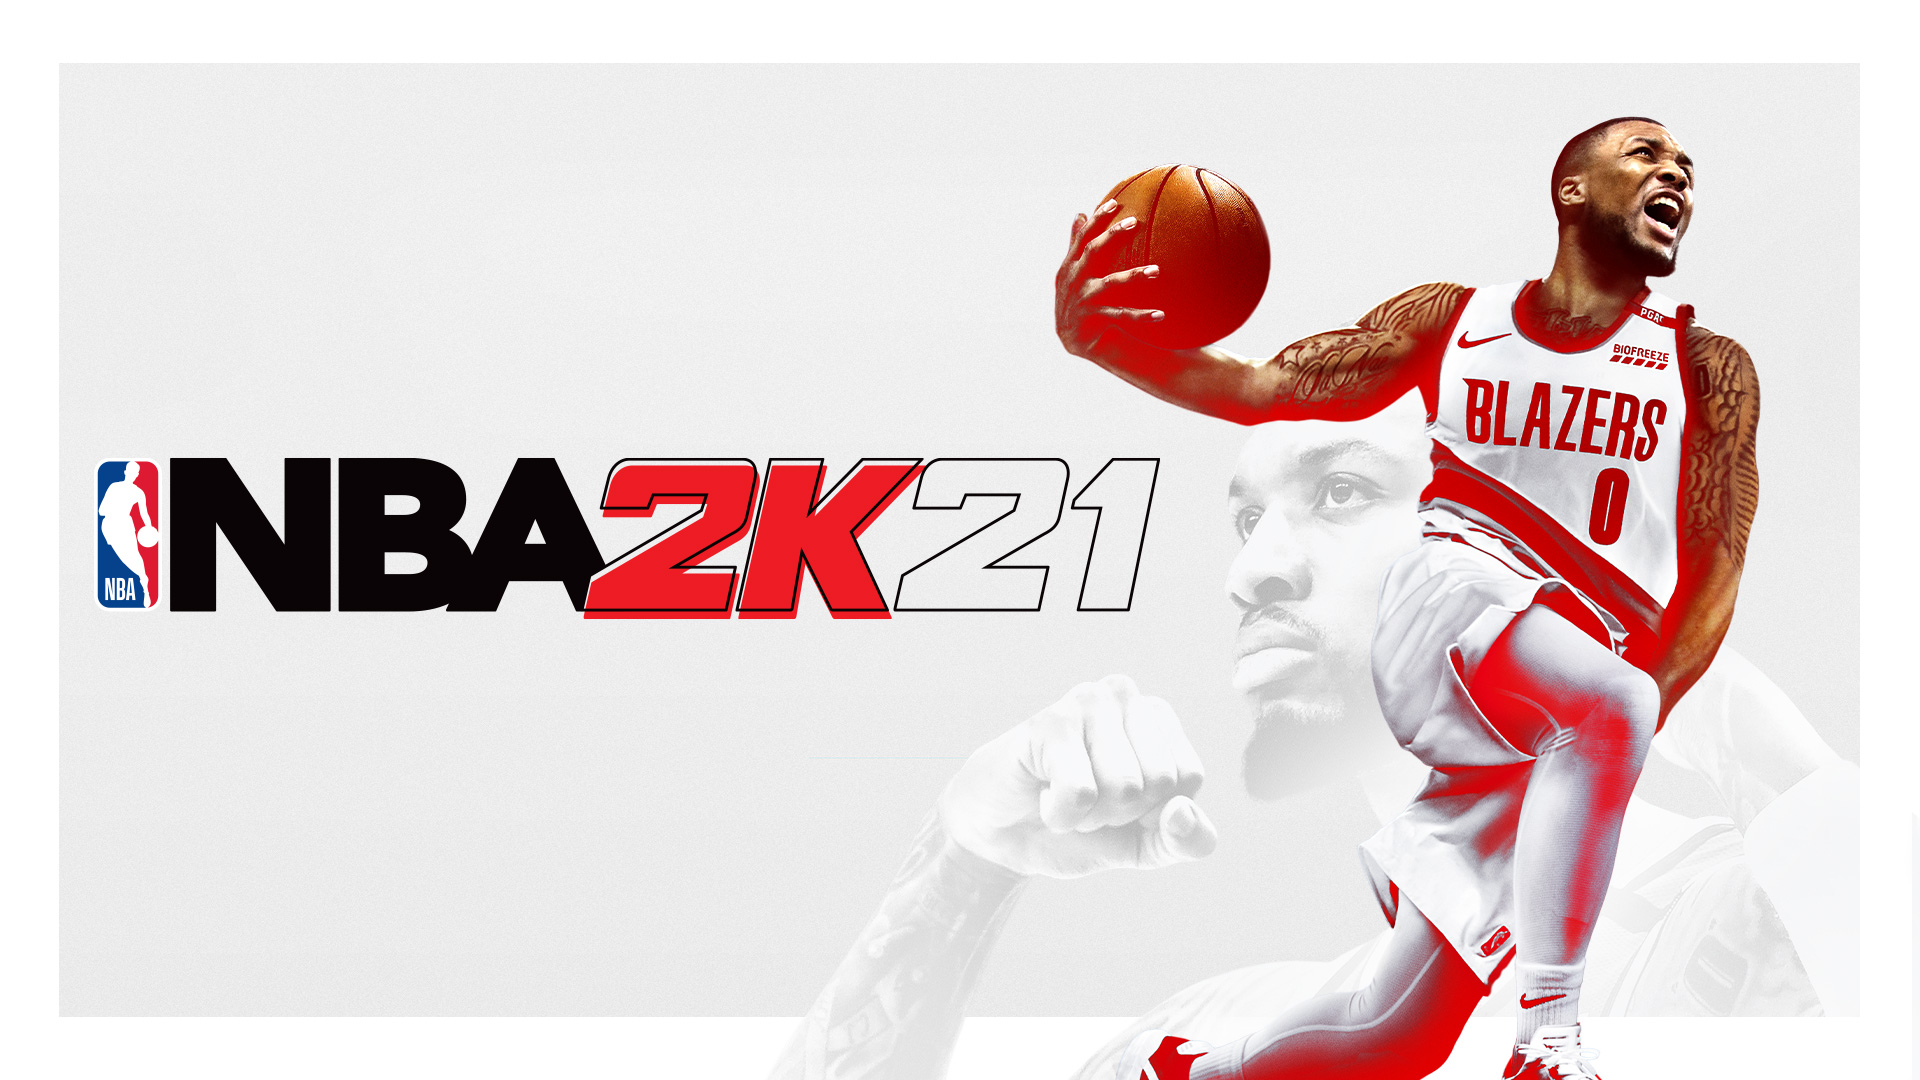 Nba 2k21 Update Out Now On Switch Nintendo Everything